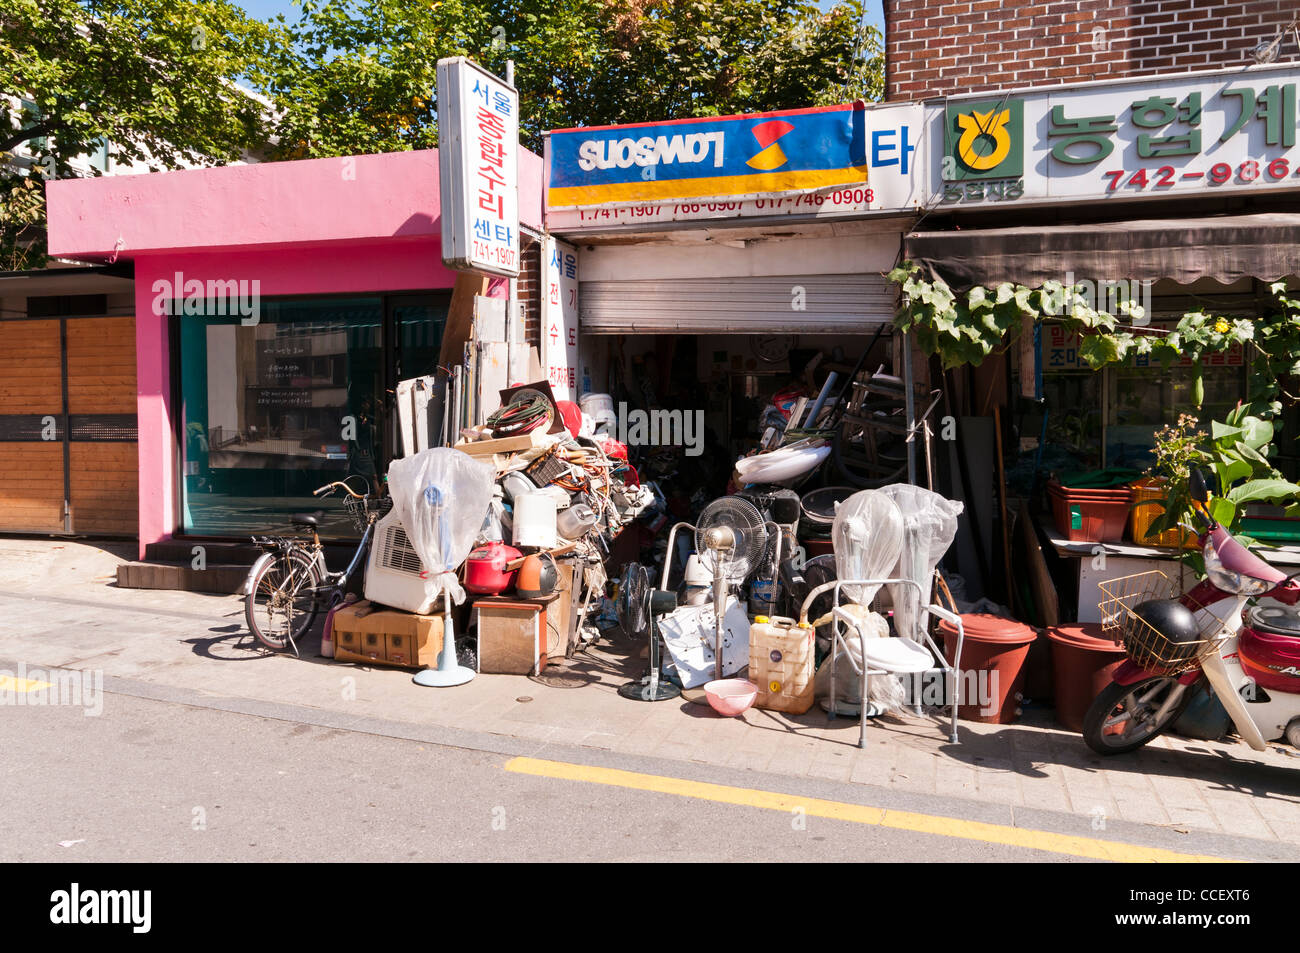 Recycling, Secondhand & Repair shop in Bukchon Hanok Village, Seoul, Korea - Stock Image